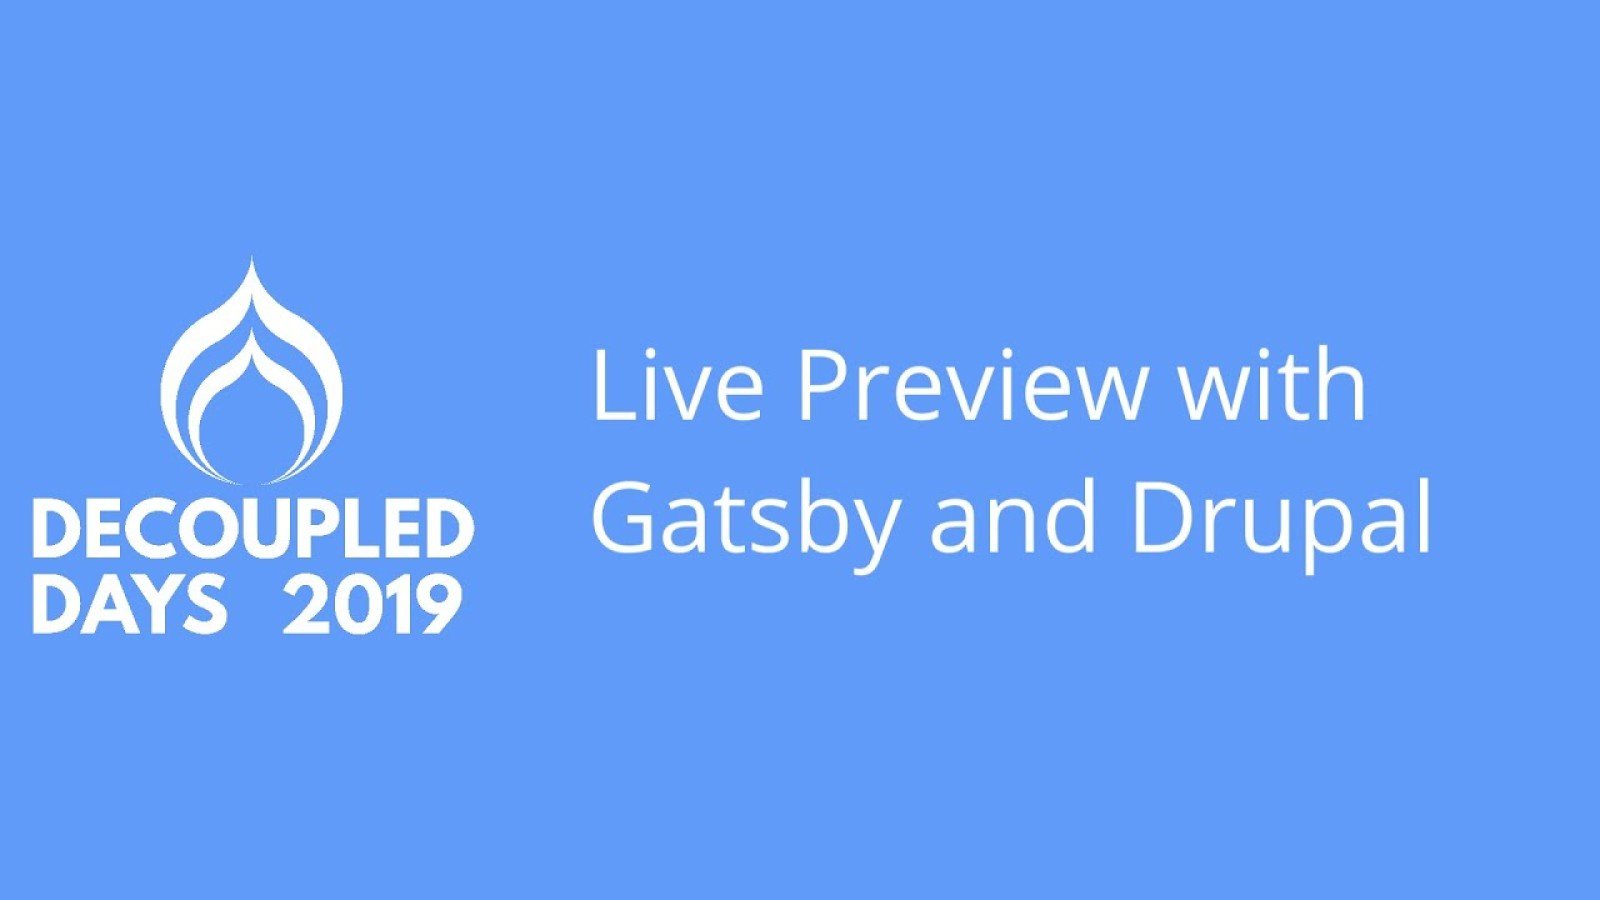 Live Preview with Gatsby and Drupal